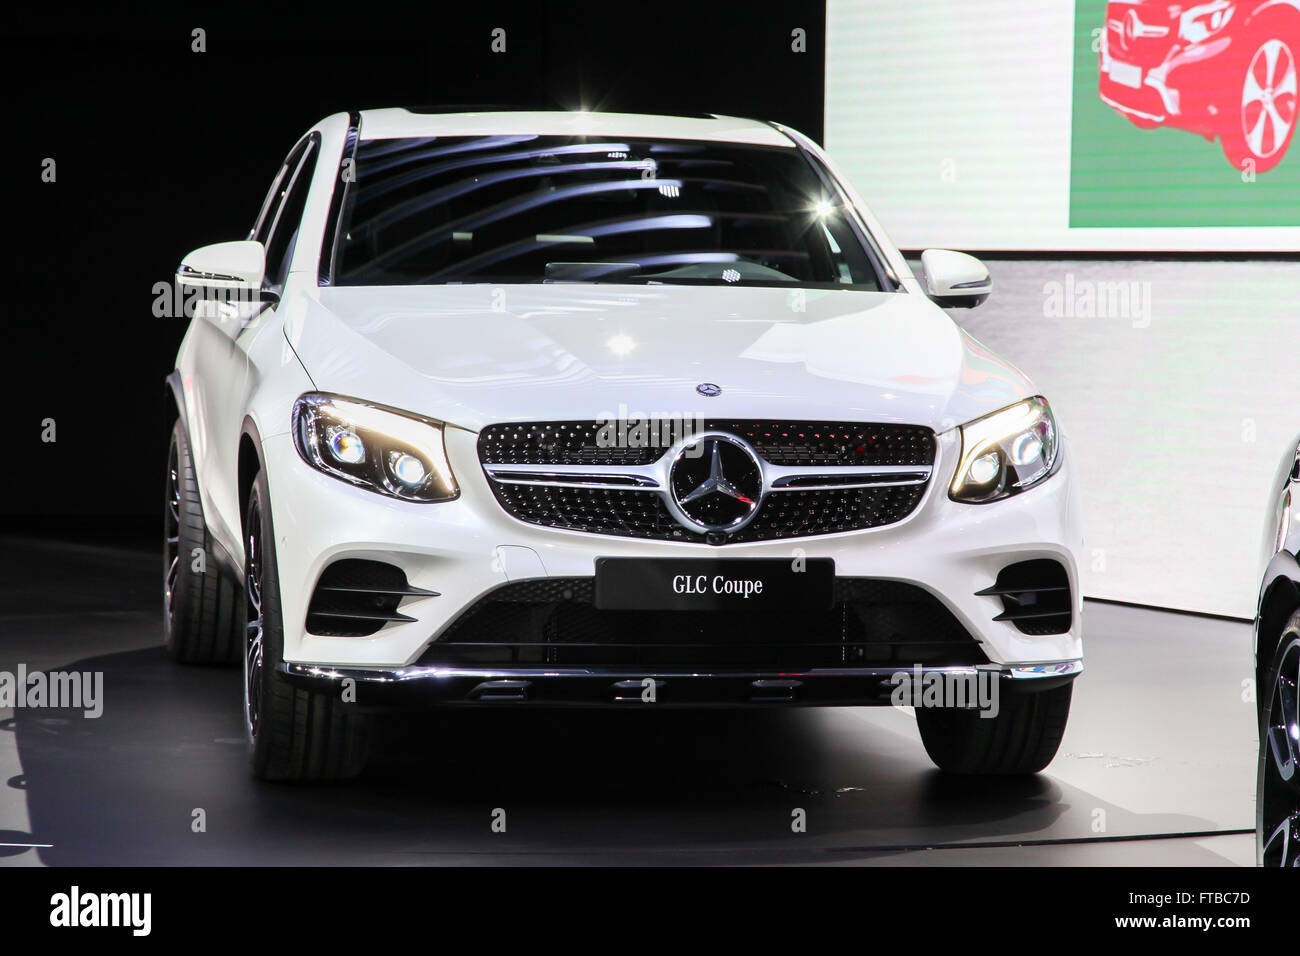 A Mercedes GLC Coupe shown  at the New York International Auto  Show - Stock Image